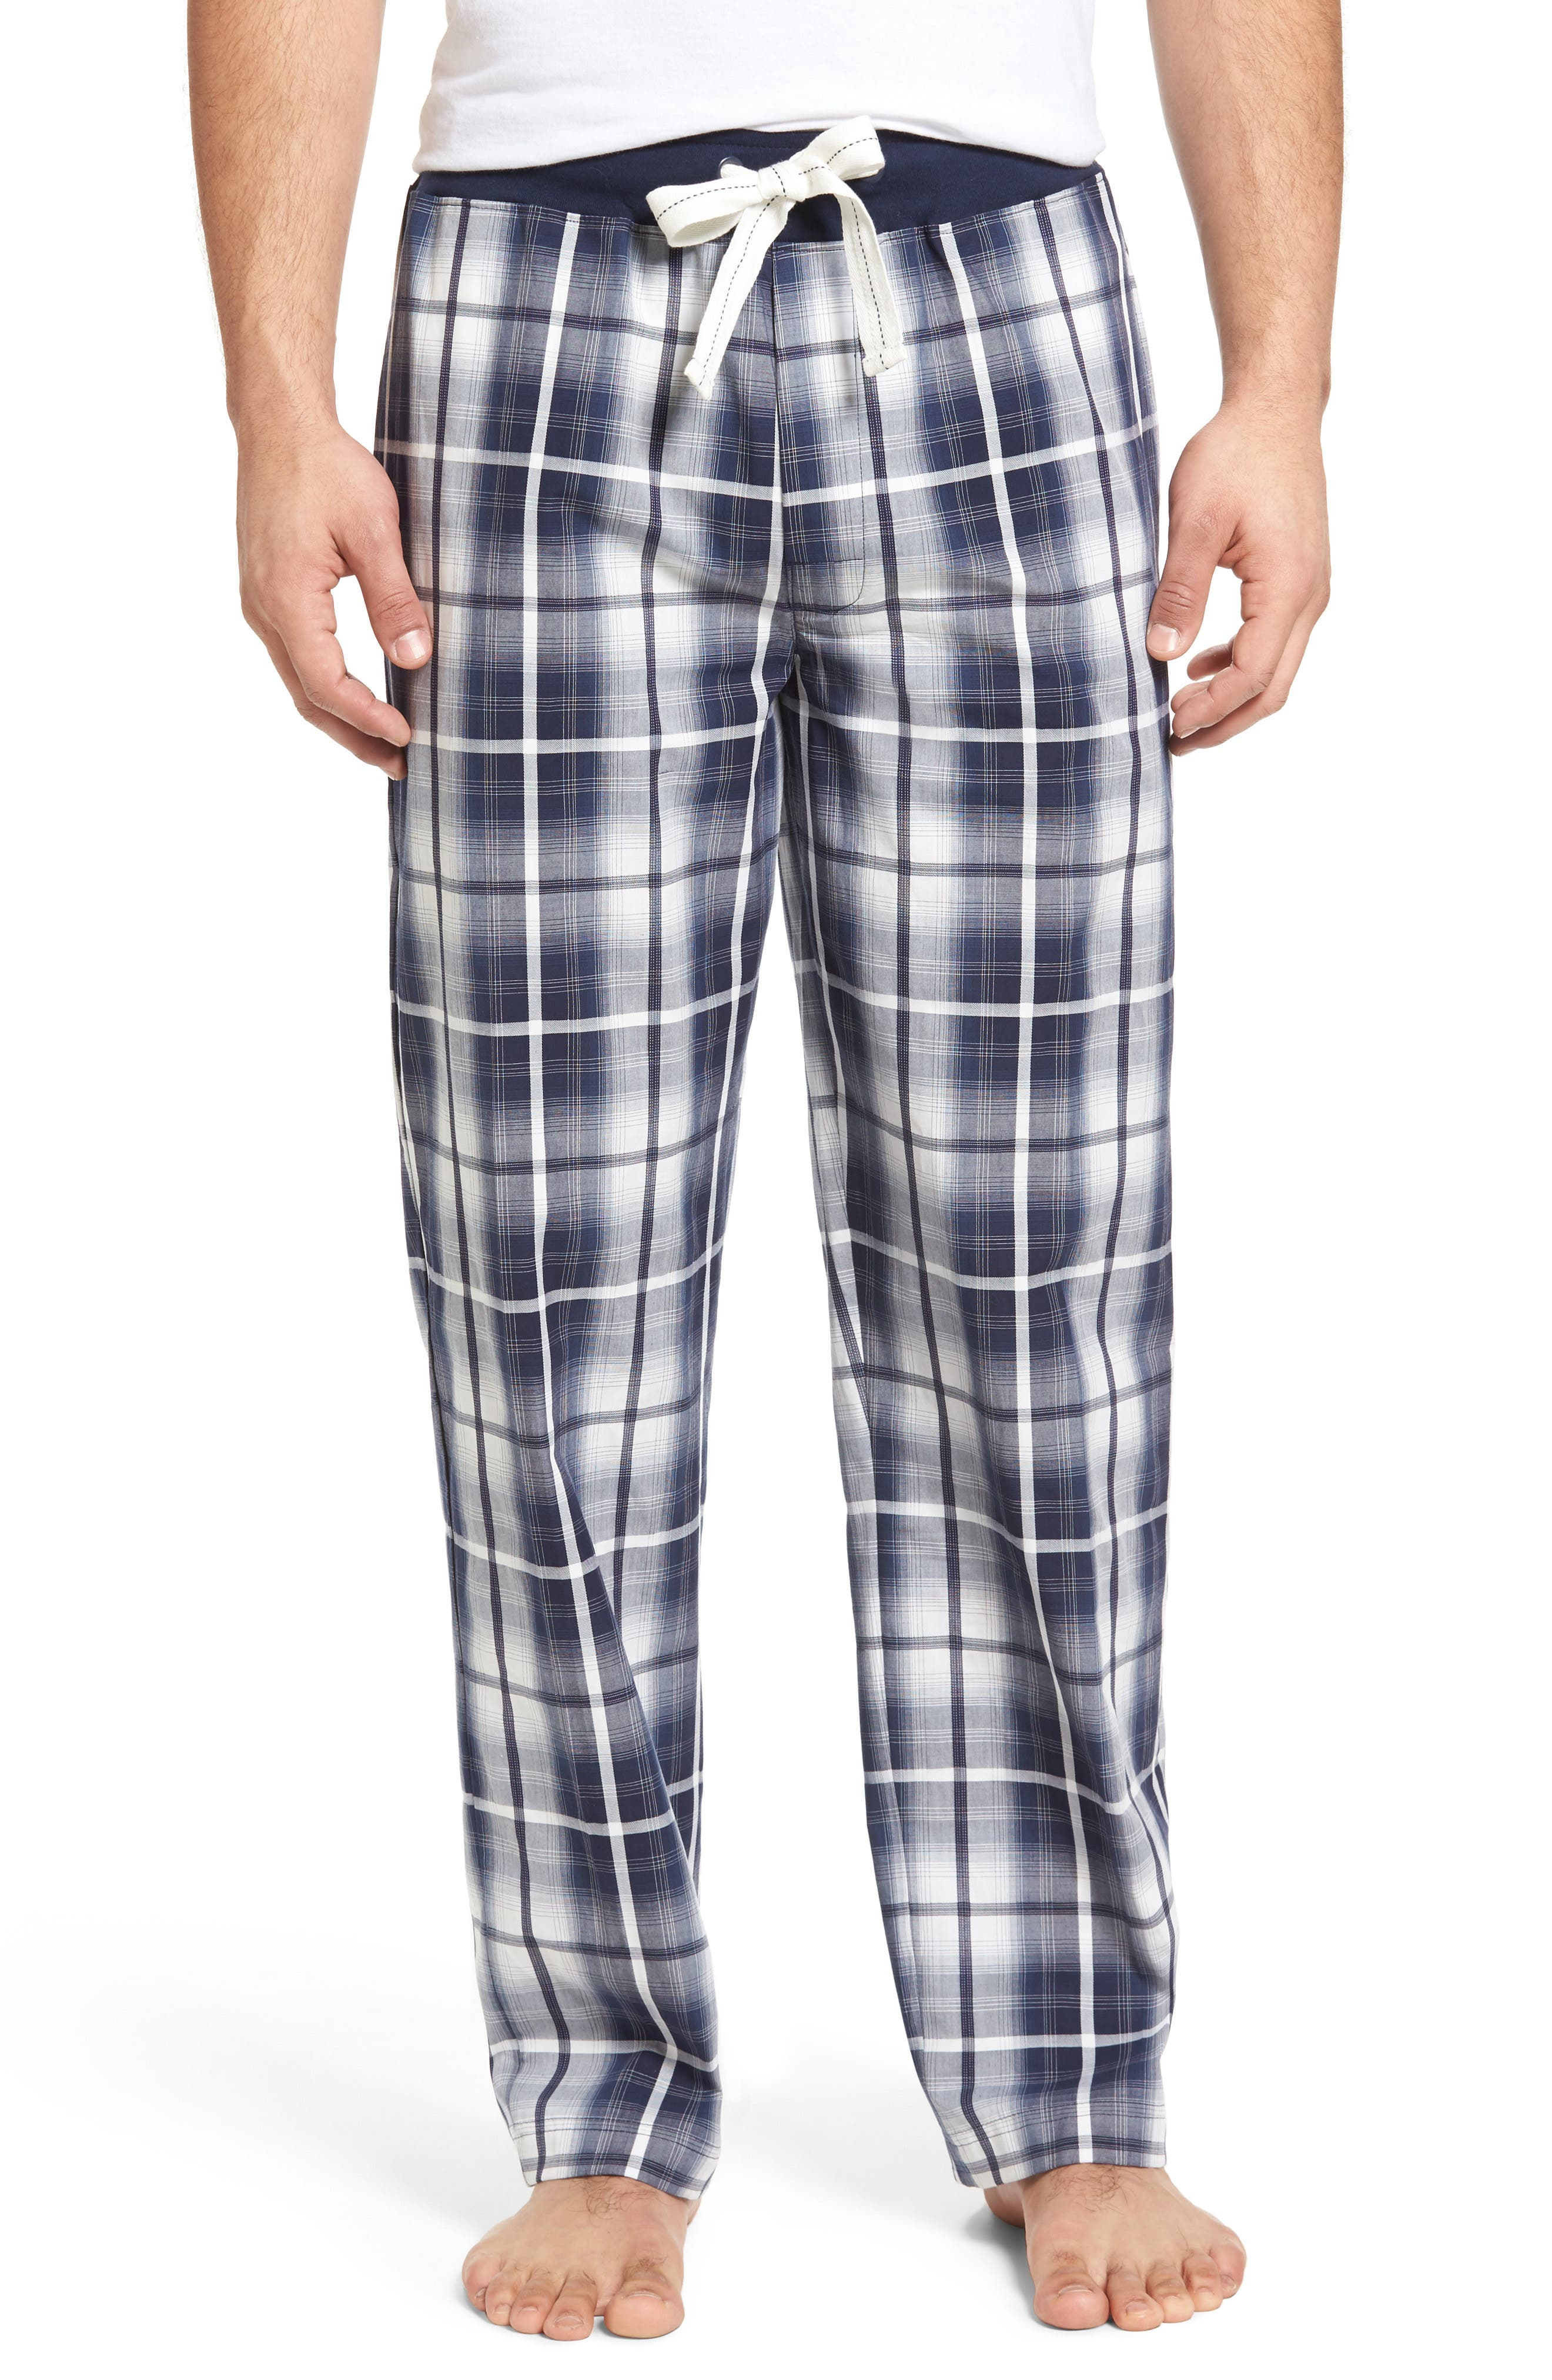 mens plaid pant | Nordstrom